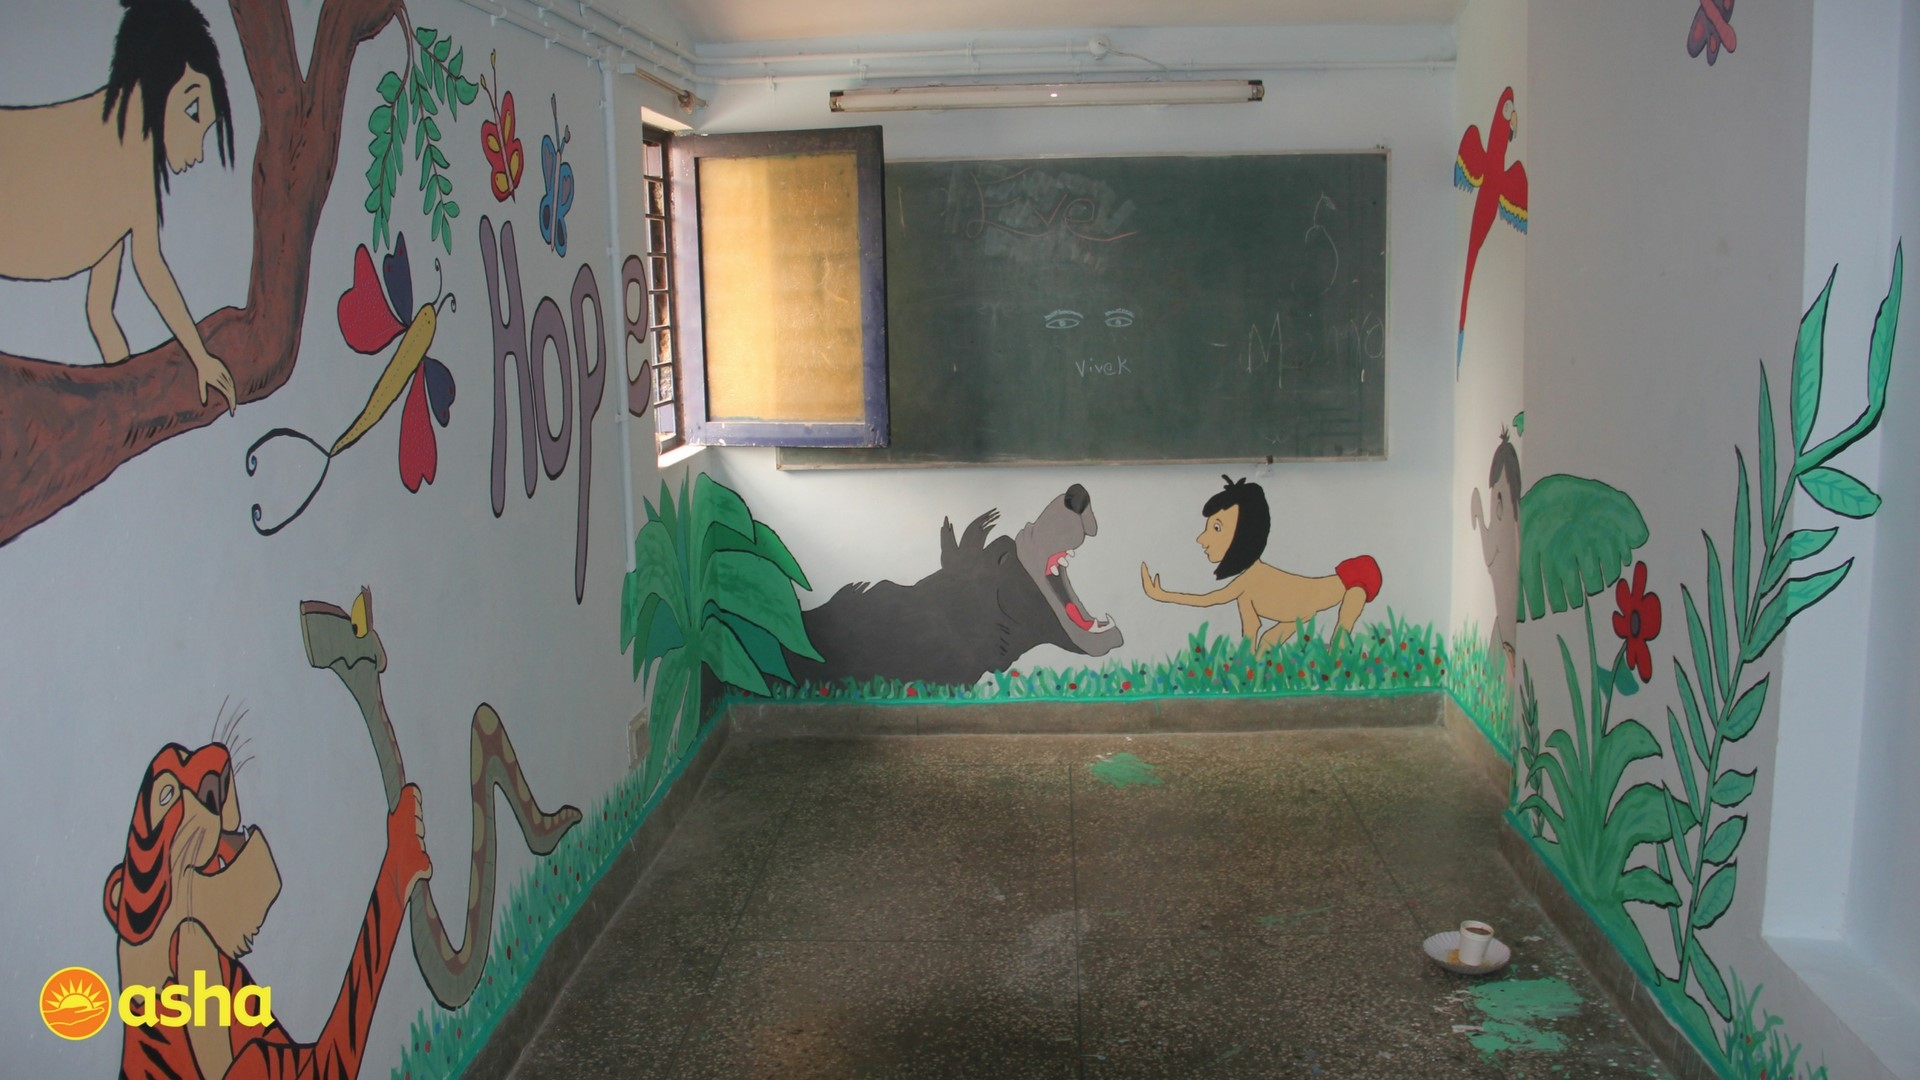 Beautiful murals made by the team.